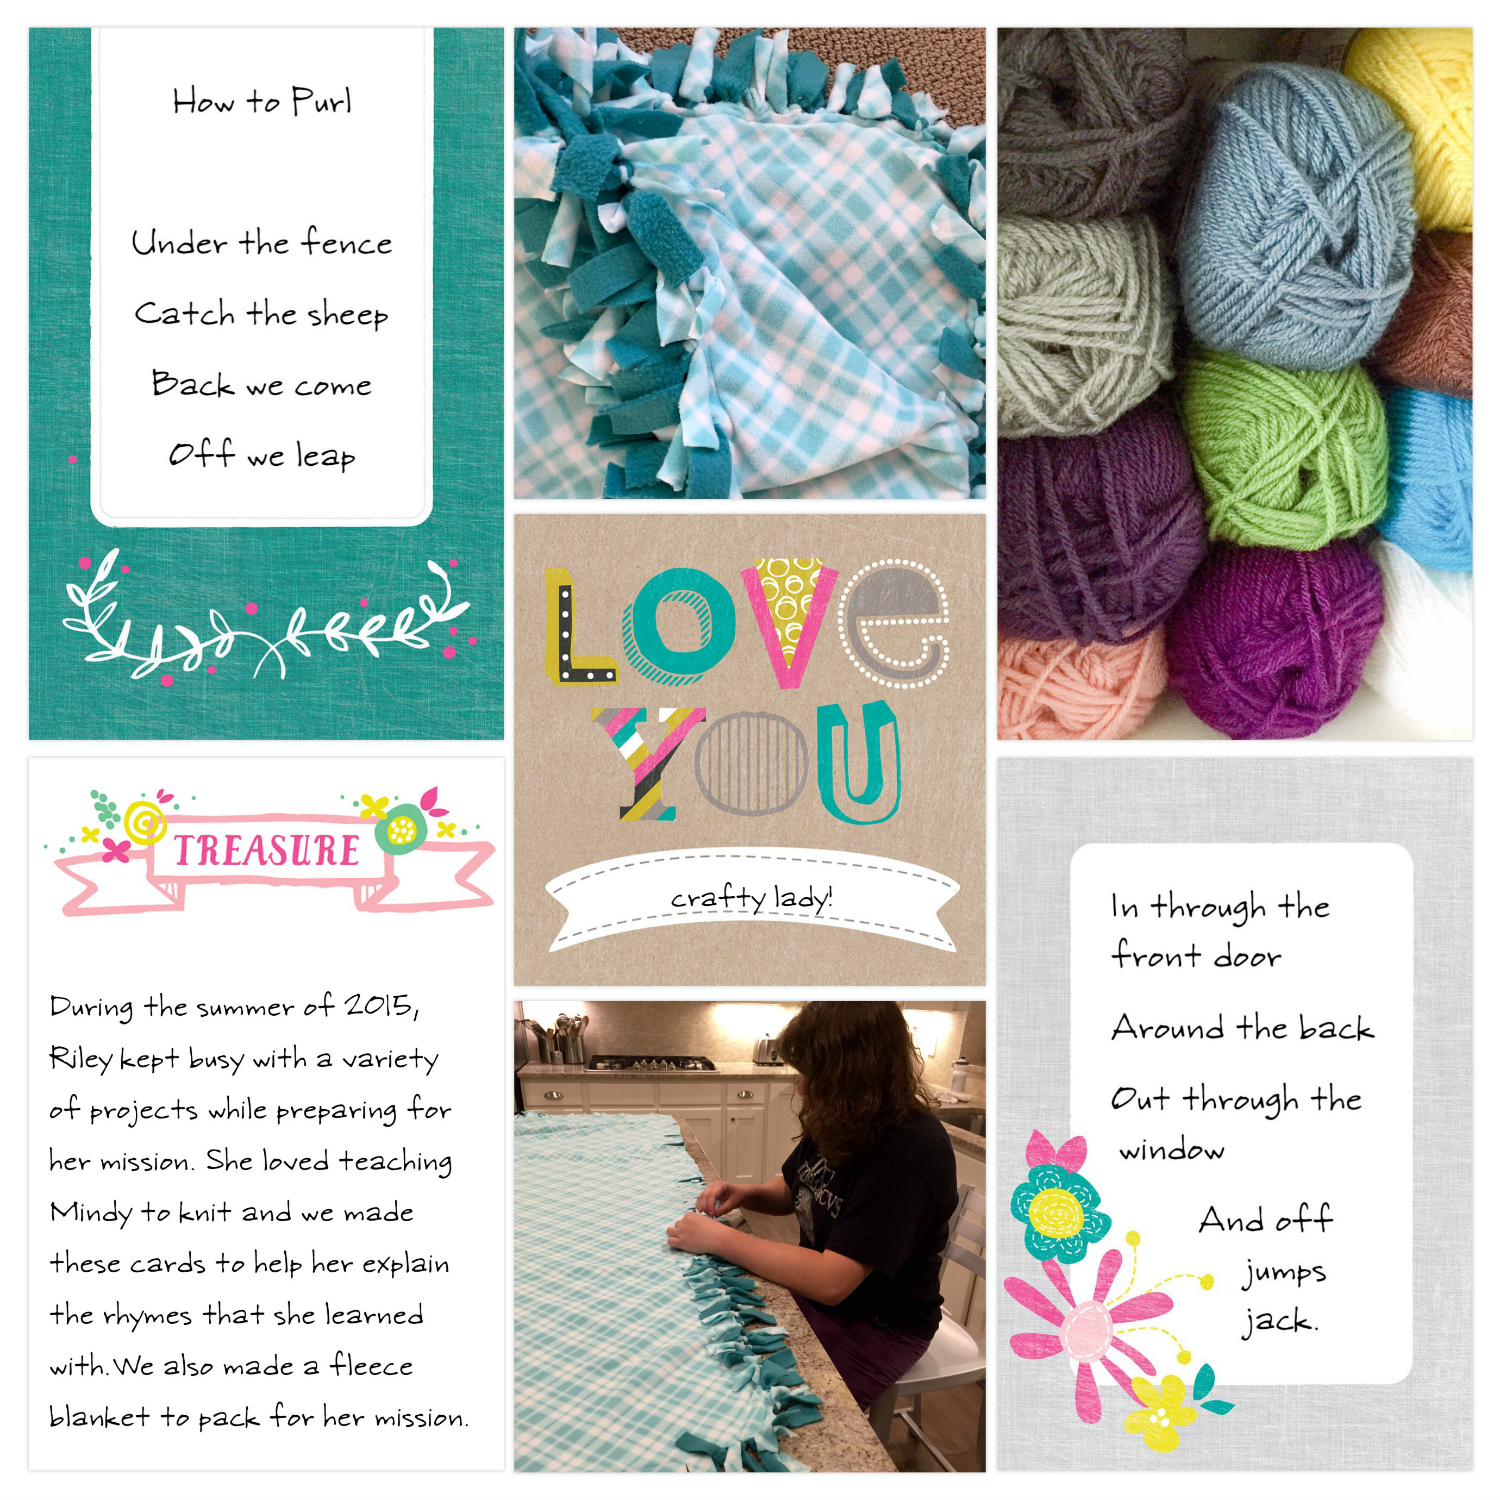 Layout by Katie Nelson using the Playful Edition and Design L in the Project Life App.